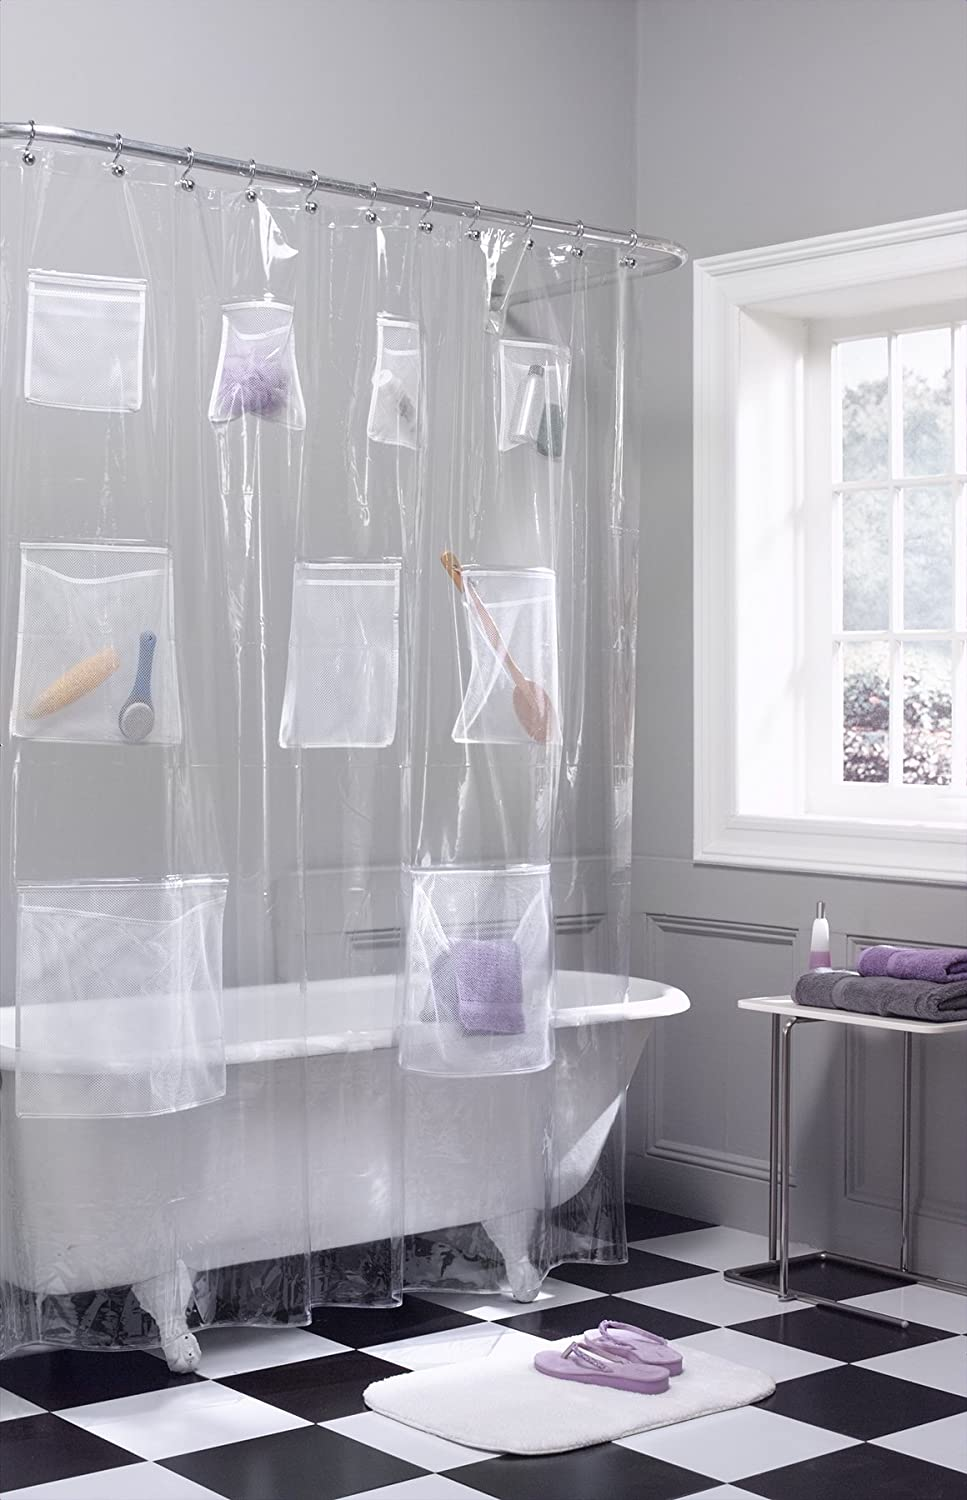 Amazon Maytex Mesh Pockets PEVA Shower Curtain Liner Organizer Clear 70 X 72 Home Kitchen